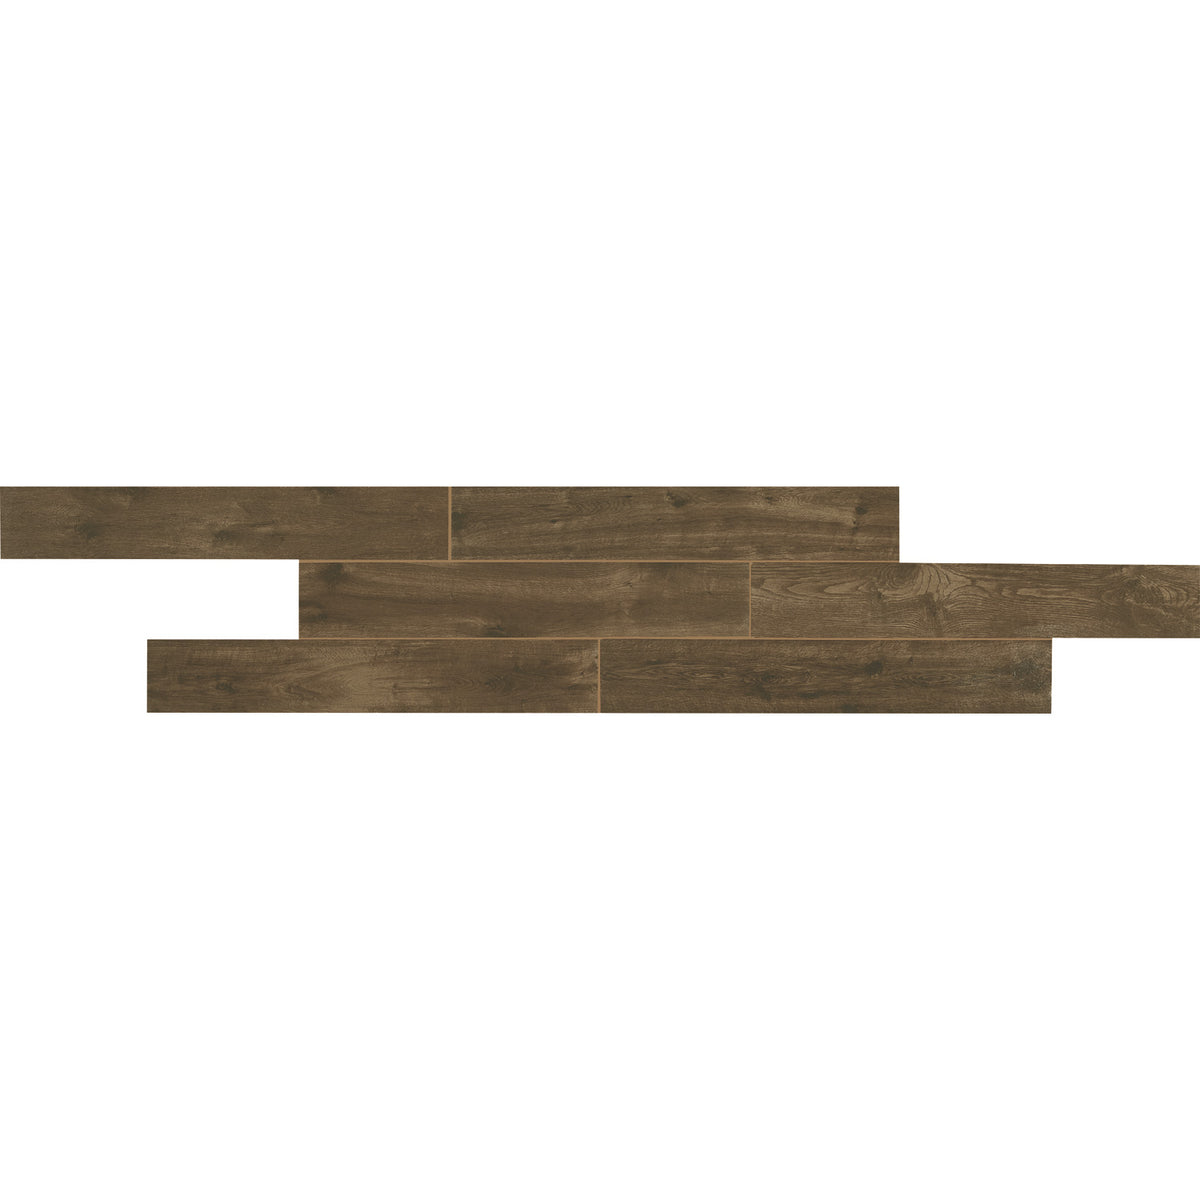 American Olean Creekwood 6 in. x 36 in. Porcelain Floor Tile - Walnut Brook